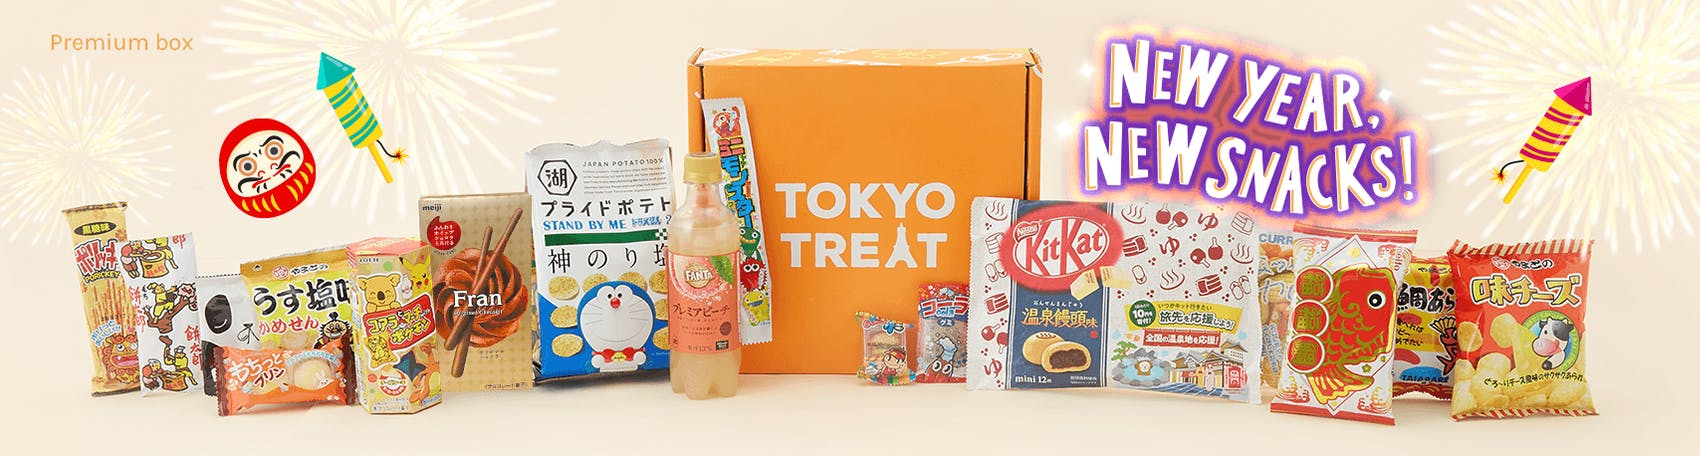 New Year Japanese Snack Boxes - TokyoTreat review